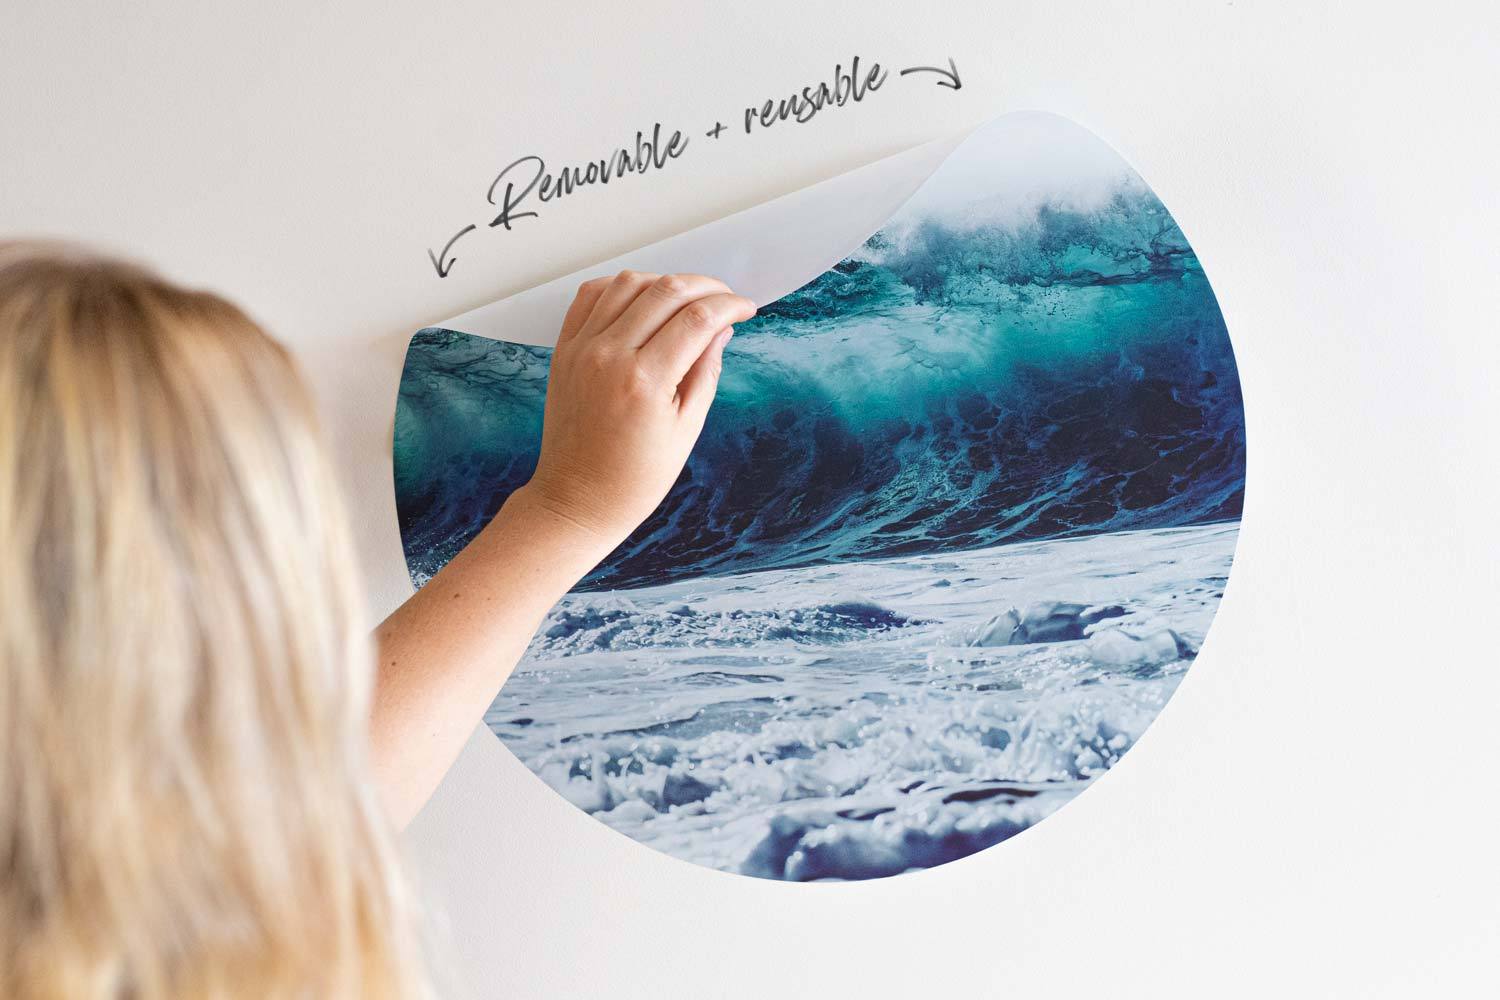 Ocean Wall Decals - Easy to install, circle wall decals by Ryan Pernofski.